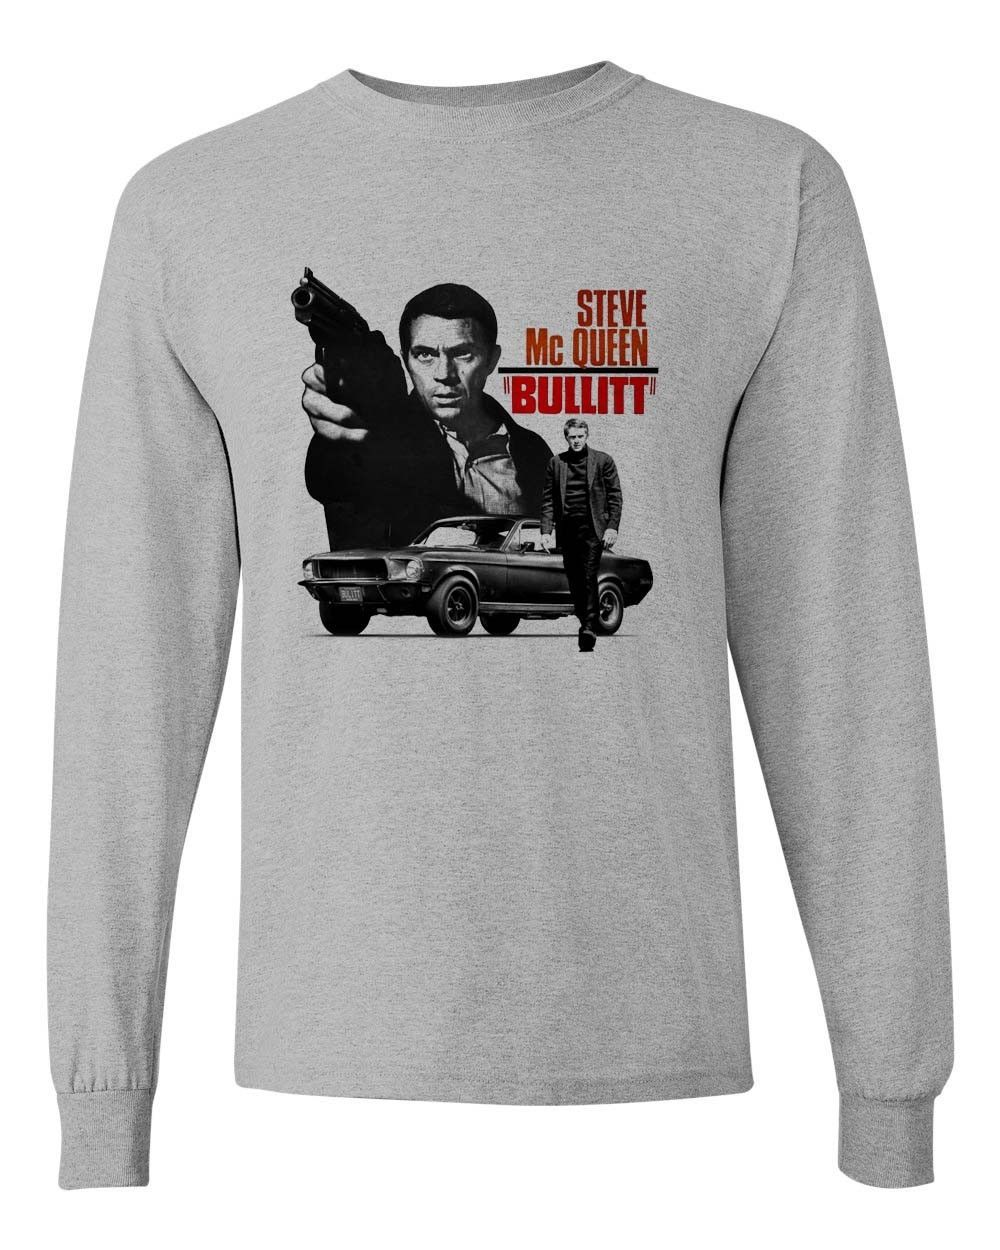 Steve mcquees bullitt american thriller robert vaughn tee for sale online graphic tshirt